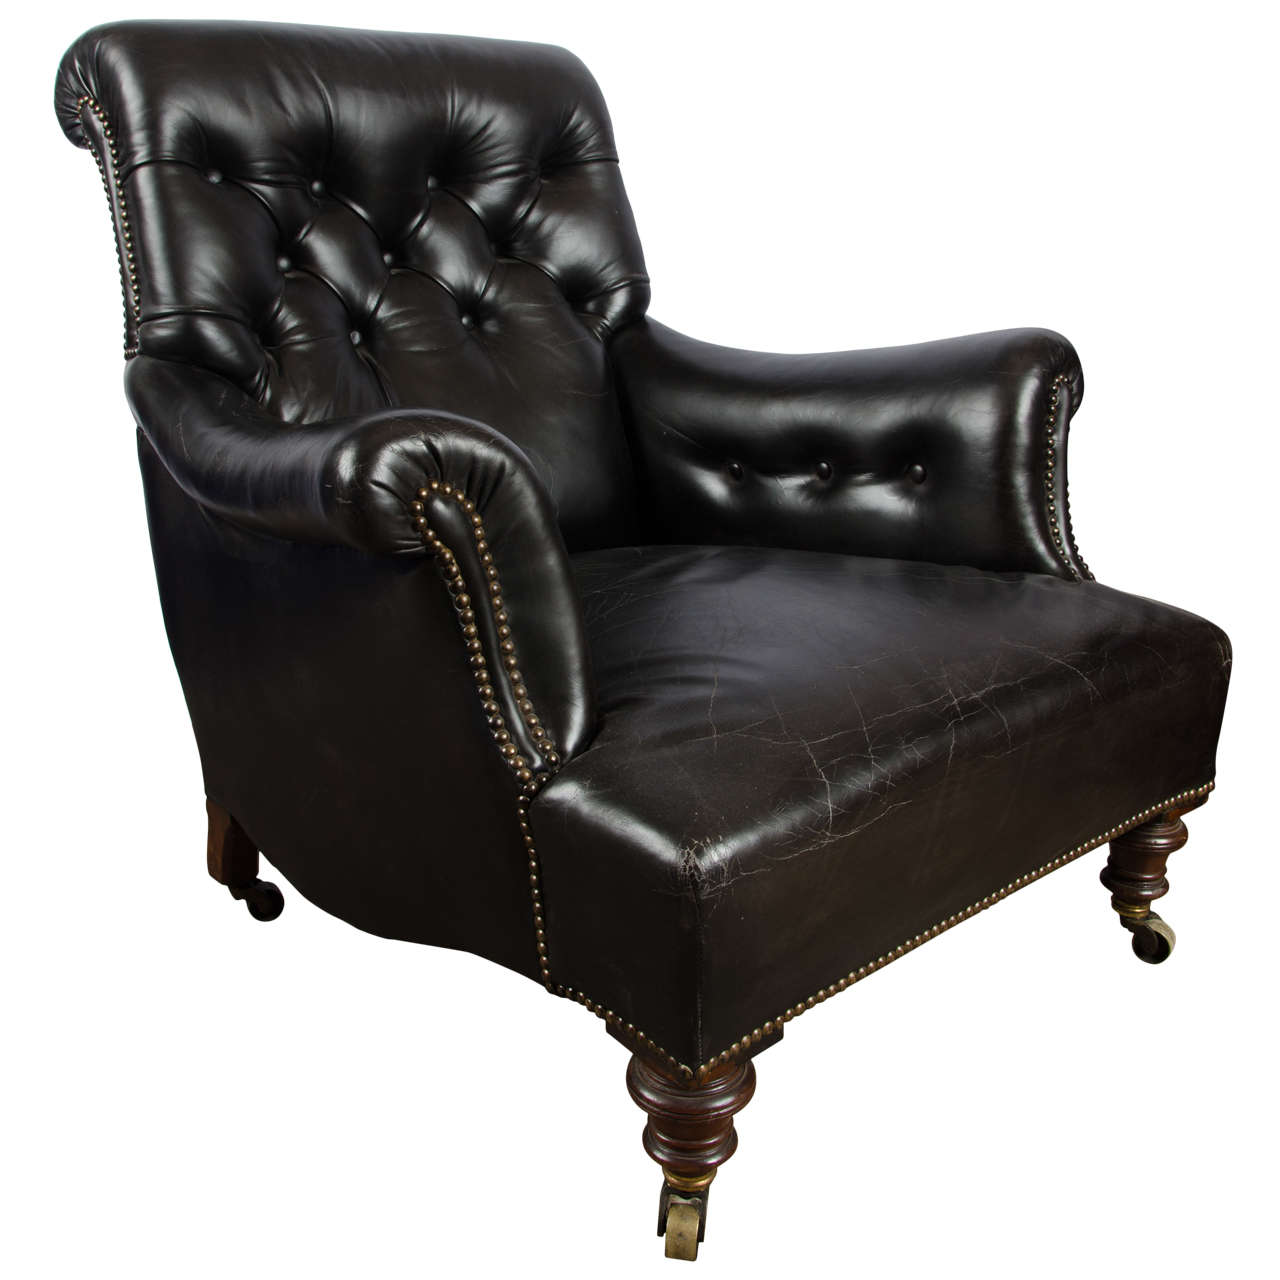 Victorian Black Leather Upholstered Armchair At 1stdibs